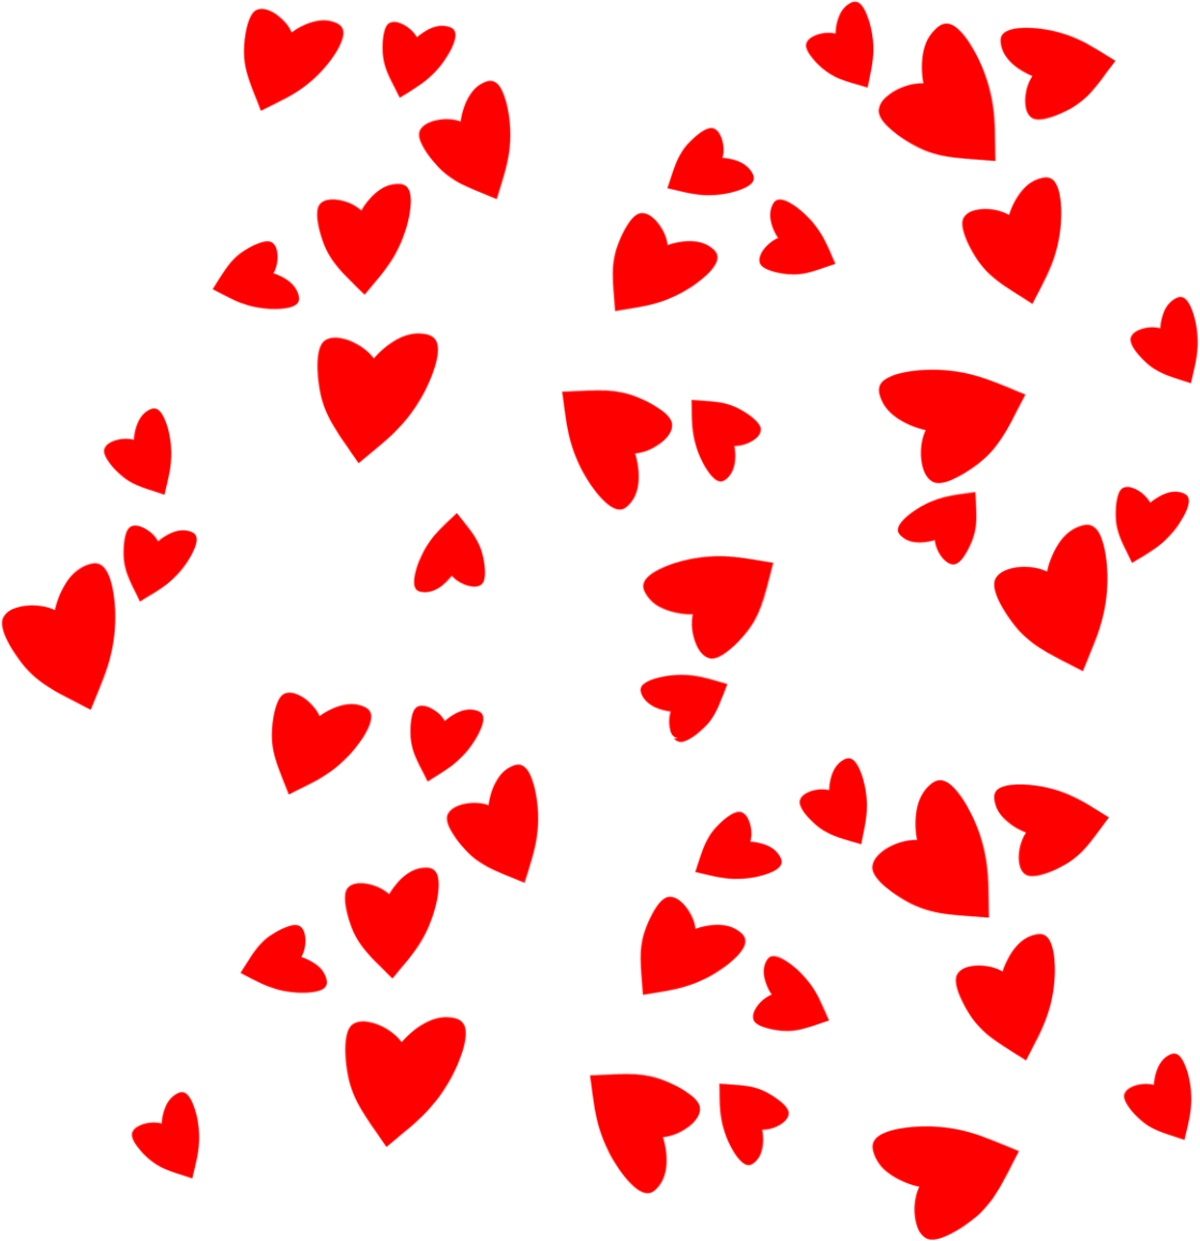 Falling in love clipart hearts picture library download Falling in love clipart hearts - ClipartFest picture library download